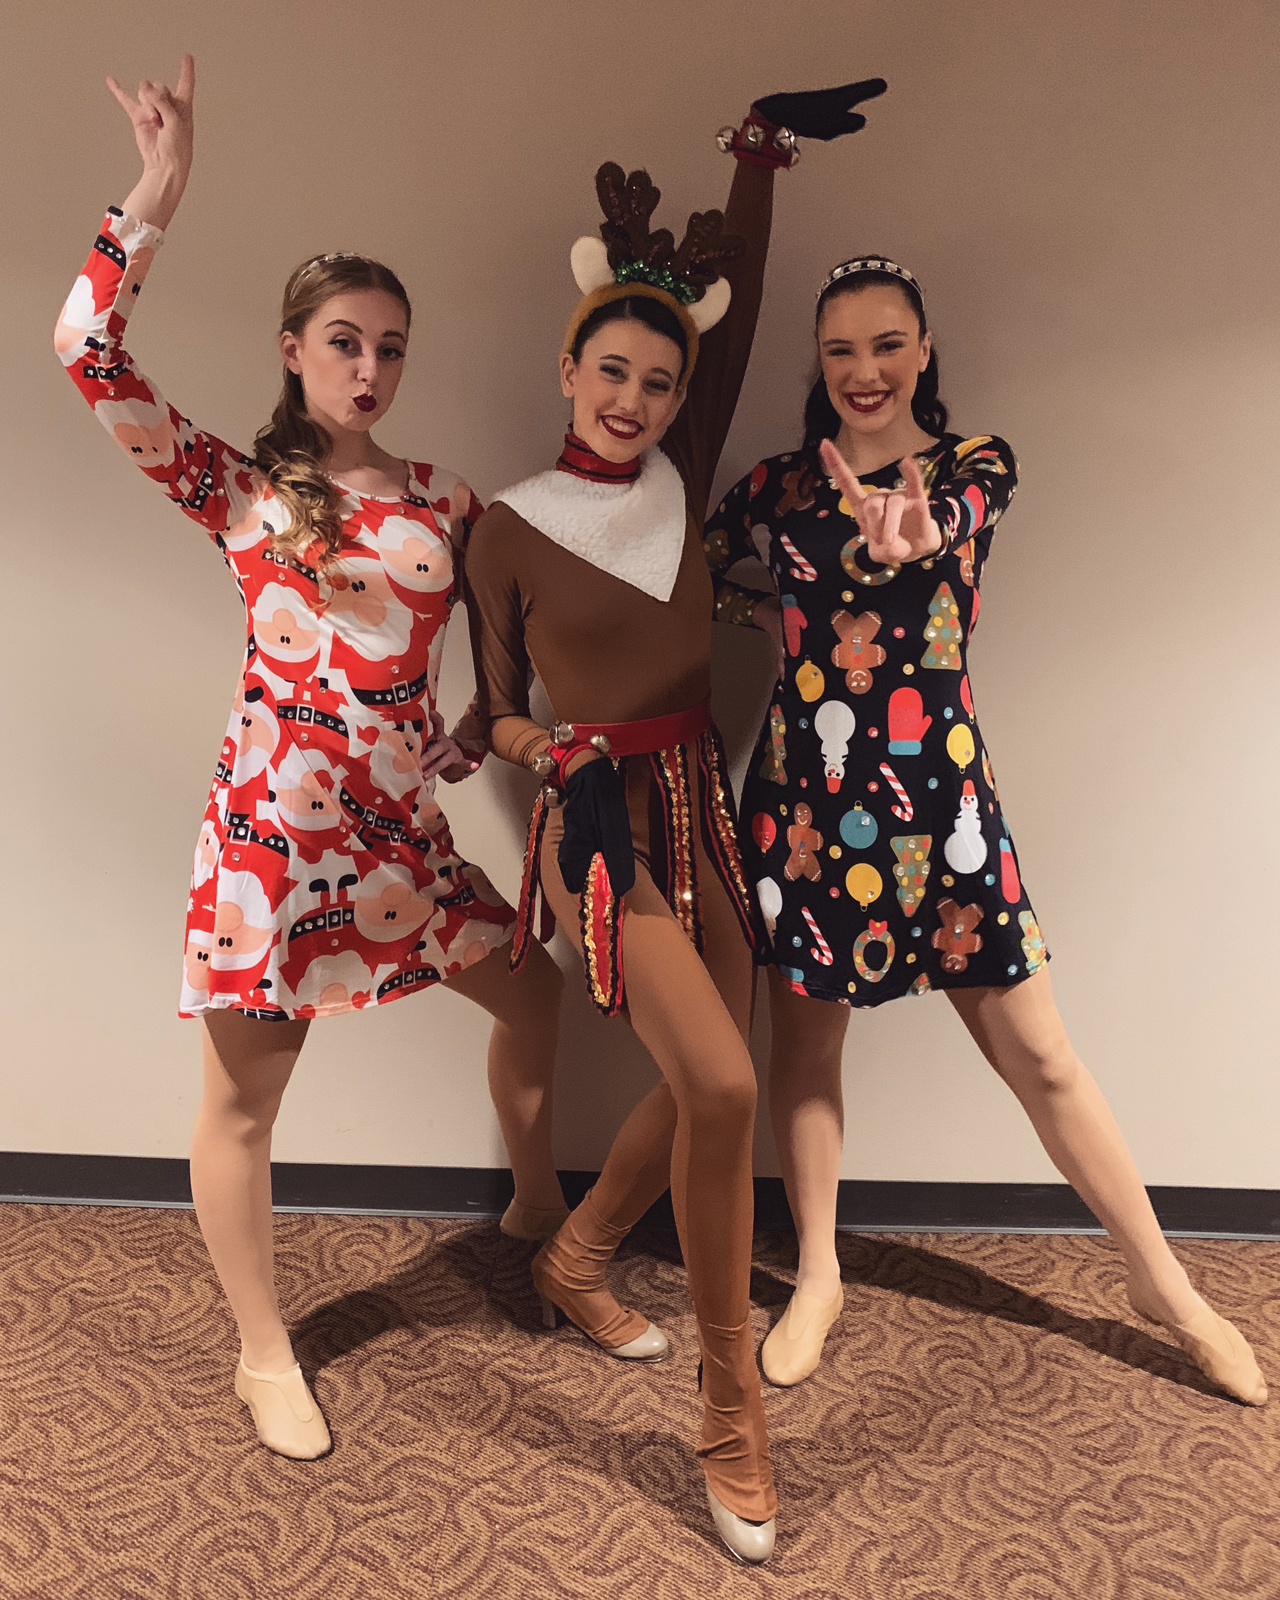 Ashley Ellis as a reindeer for a dance performance